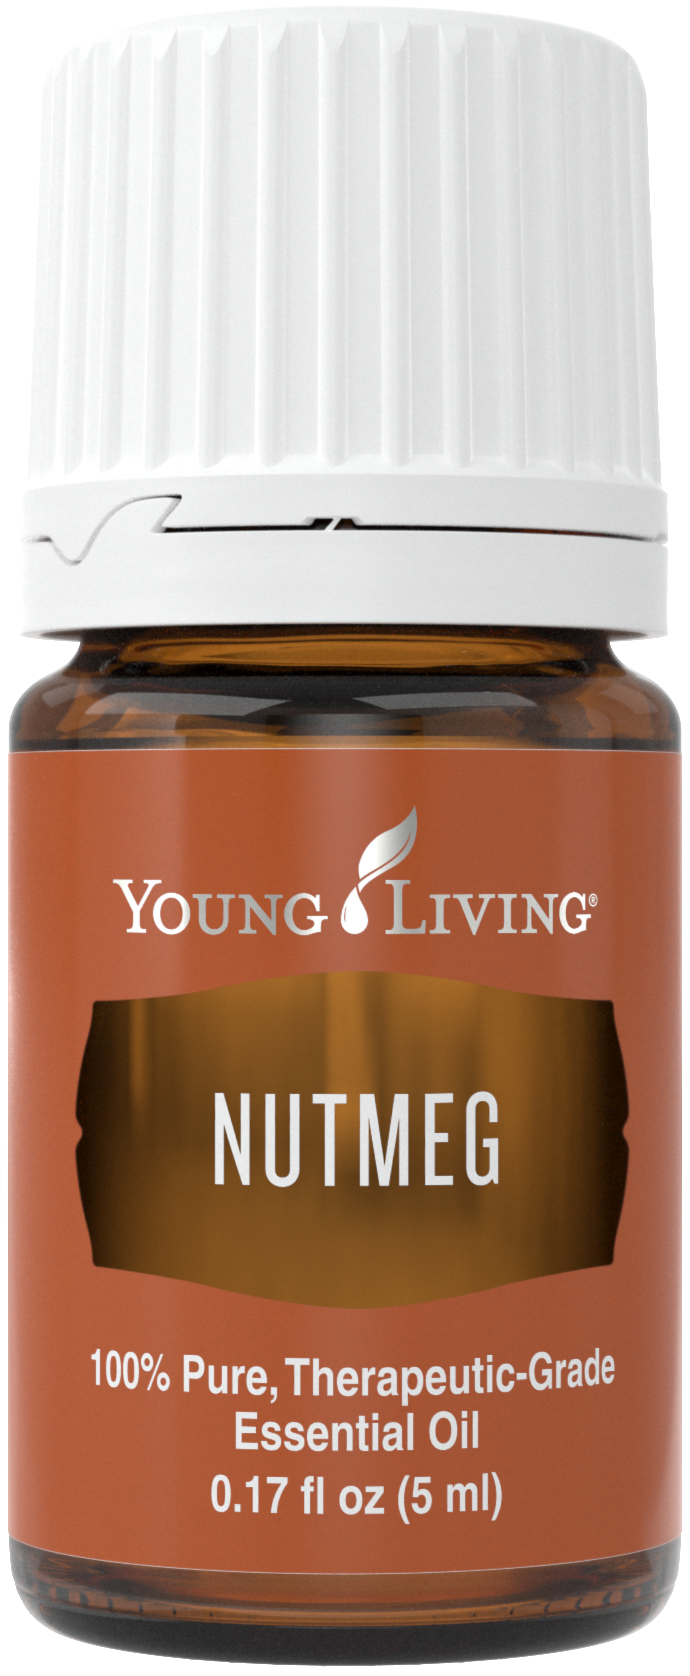 nutmeg_5ml_silo_us_2016_24527317175_o